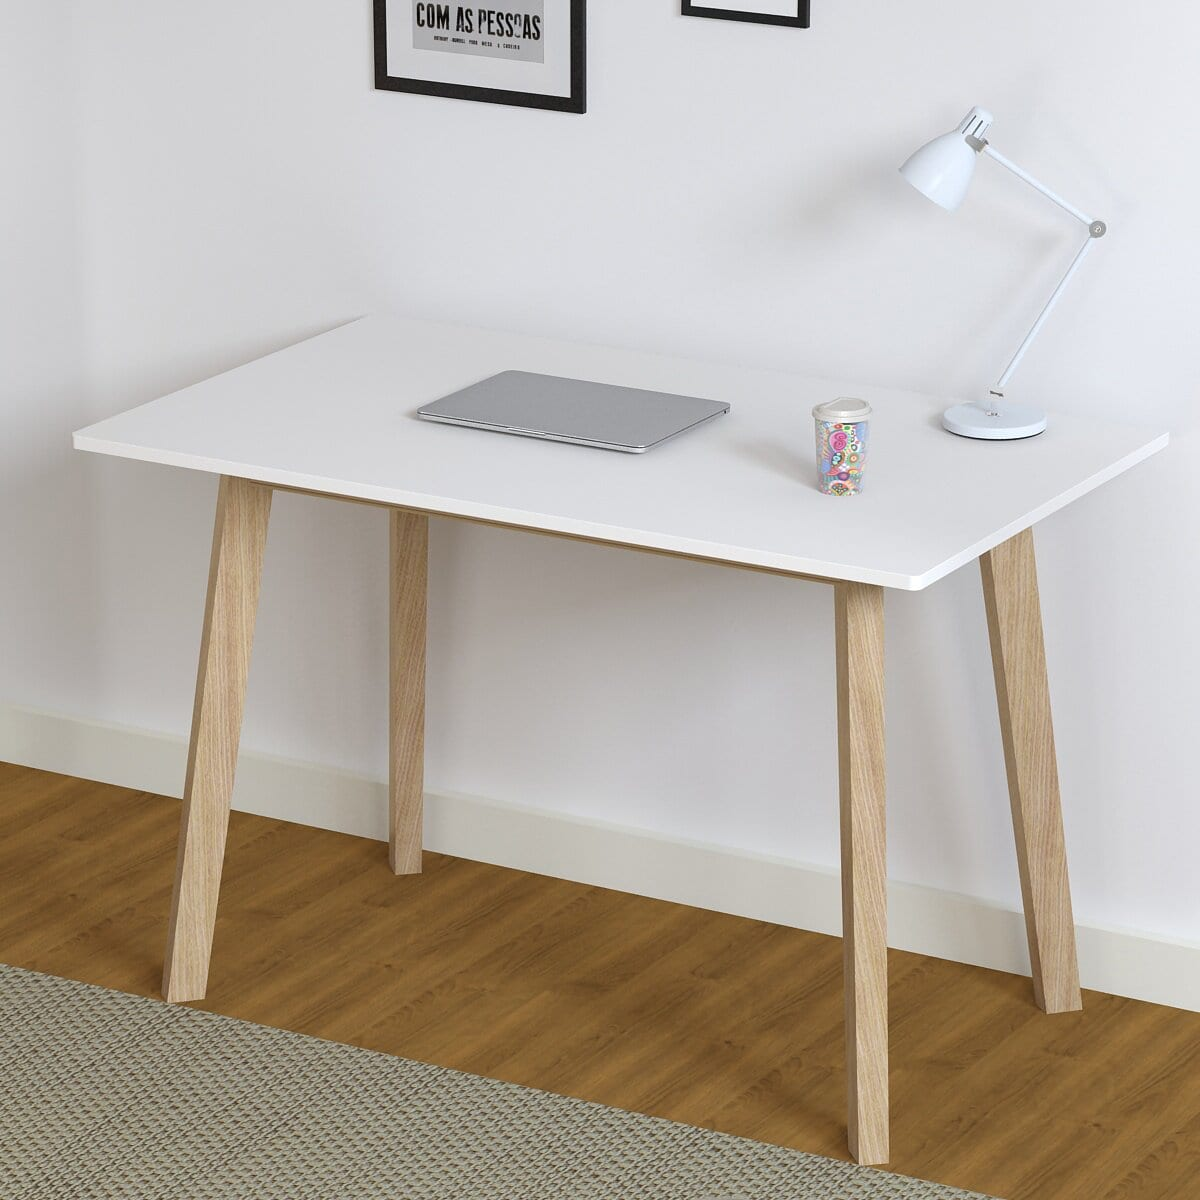 A Space Saving Dining Table That Can Also be a Desk